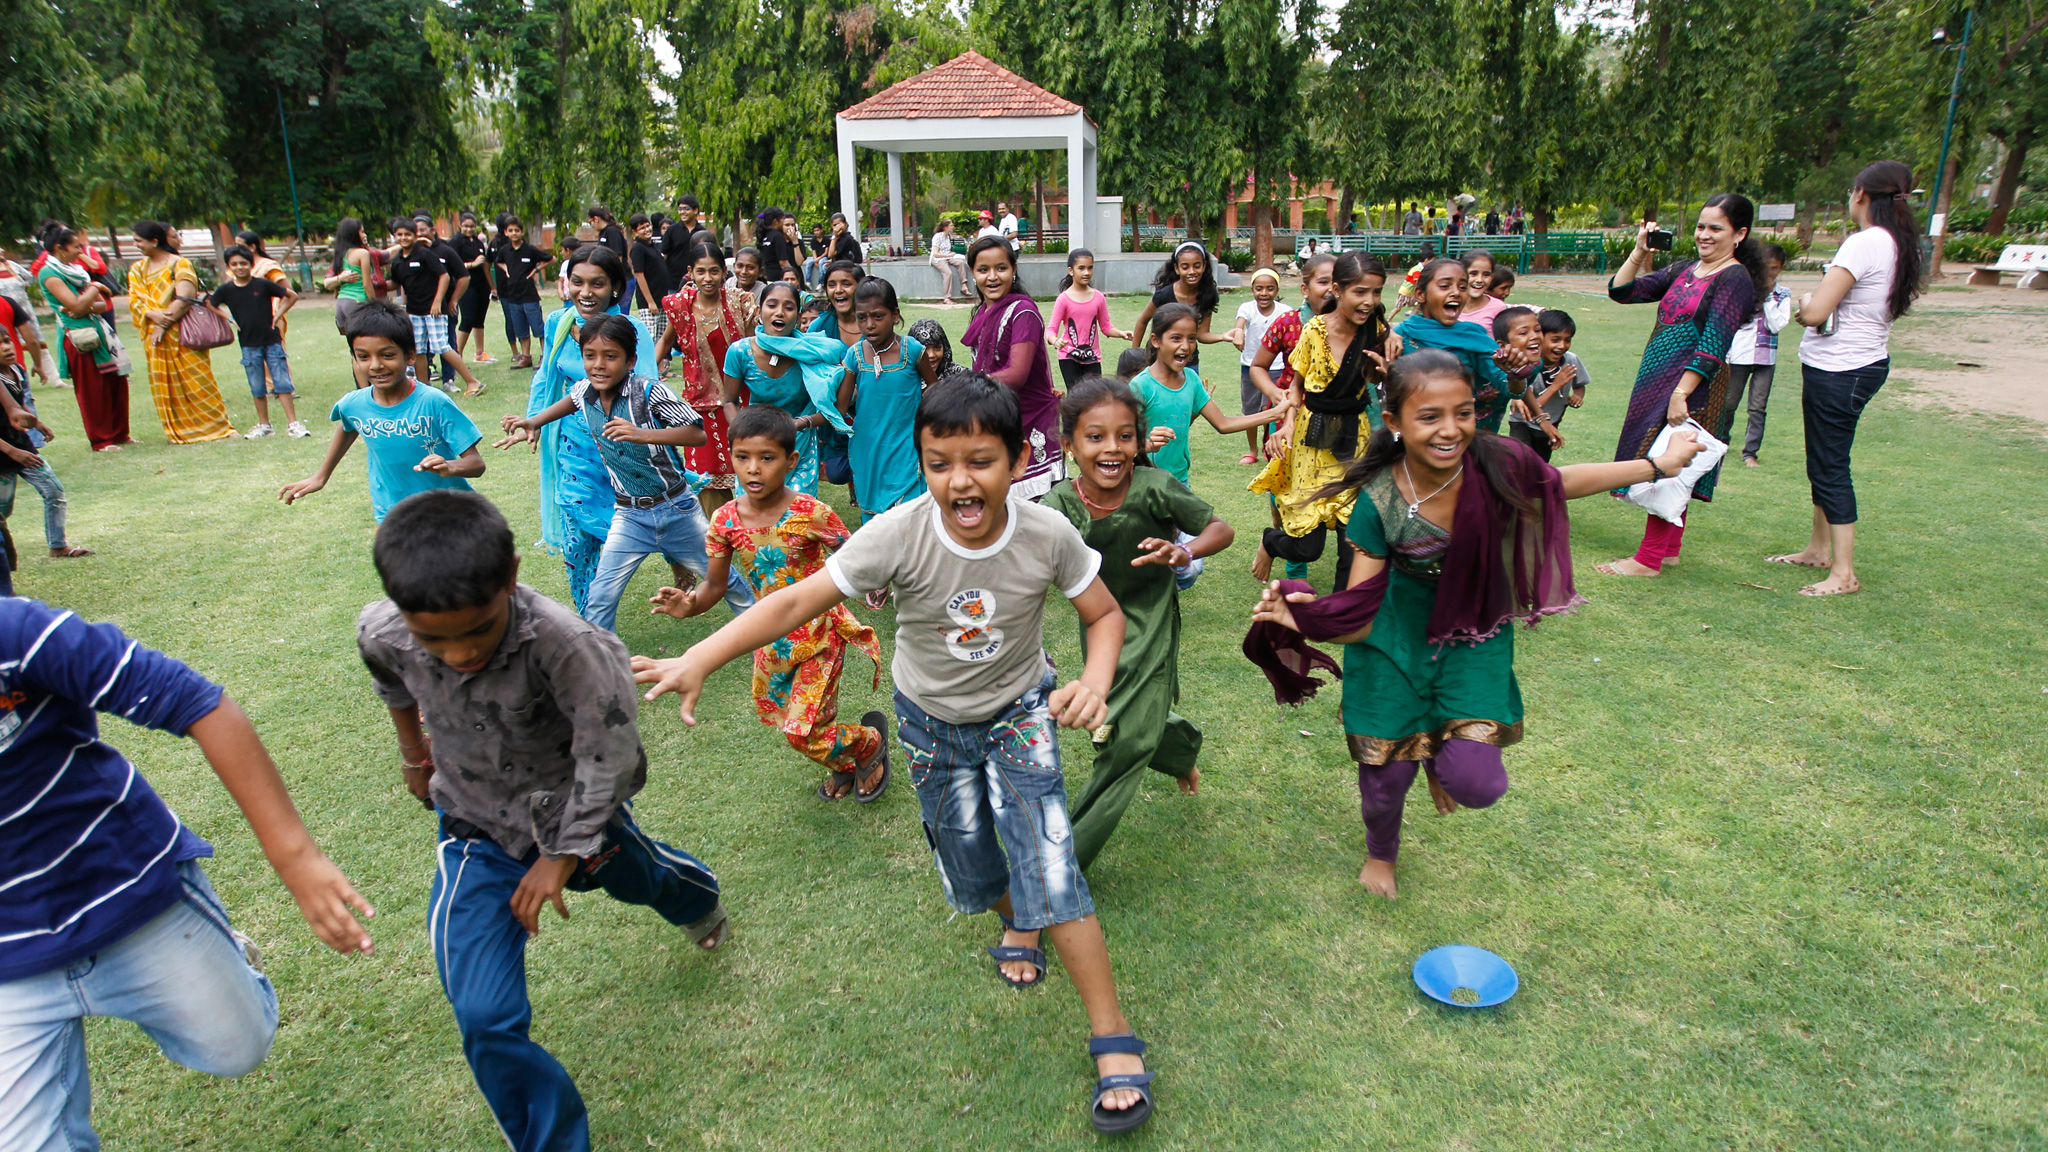 Indian children reclaim their space and respect